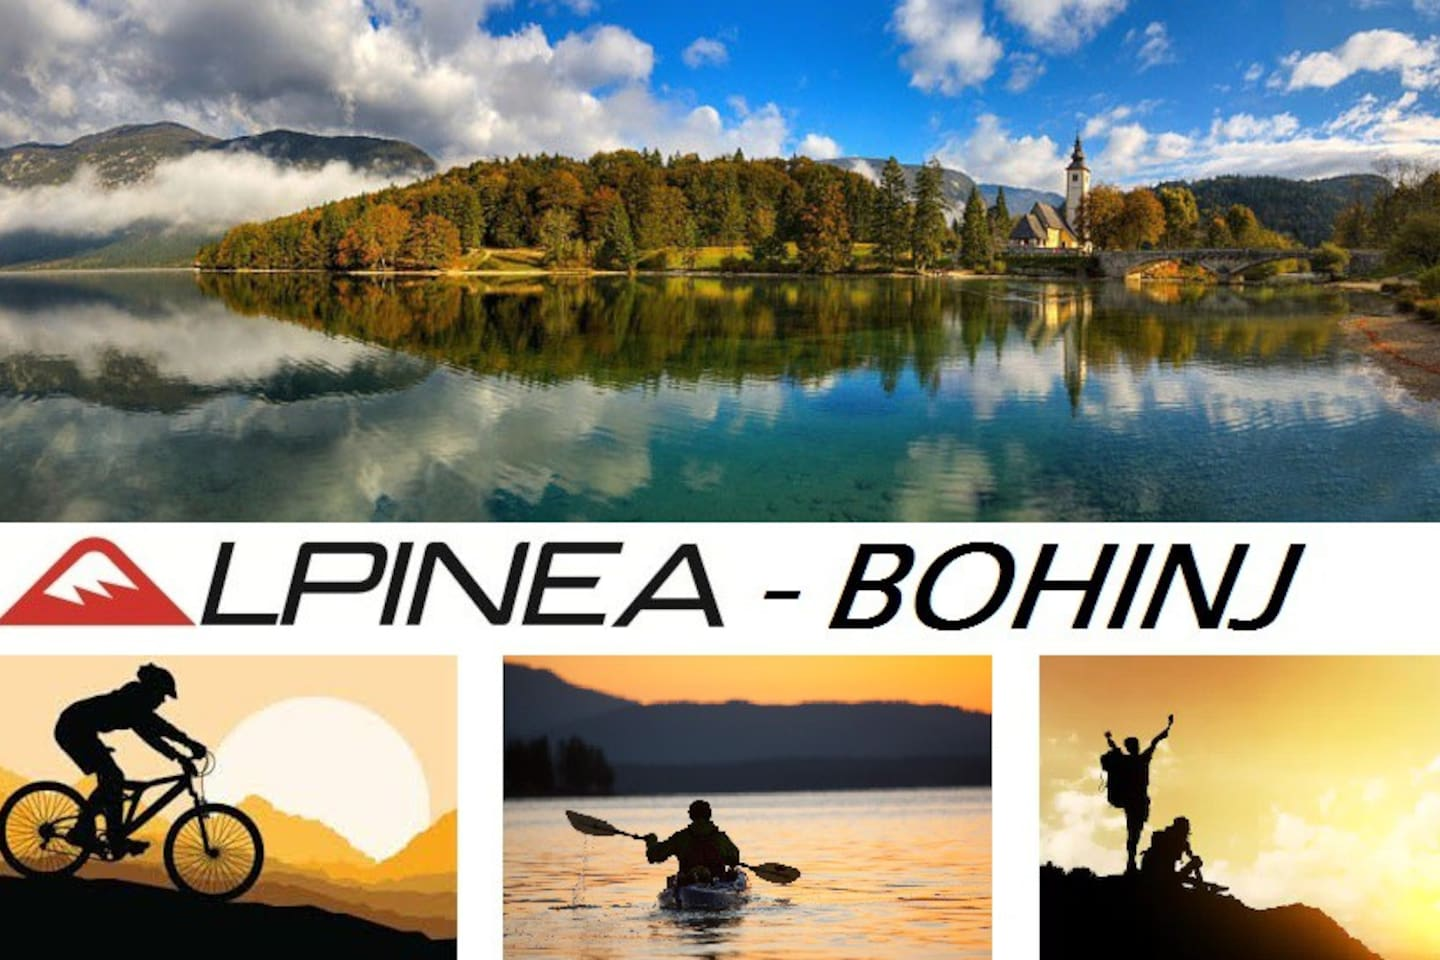 Cozy apartment near the Bohinj lake for ACTIVE VACATIONS...You can enjoy swimming, rafting, cayaking, hiking, mounteniring, climbing, biking, paragliding, canyoning, playing beach volley and in the winter: skiing, nordic skiing, ice skating,...